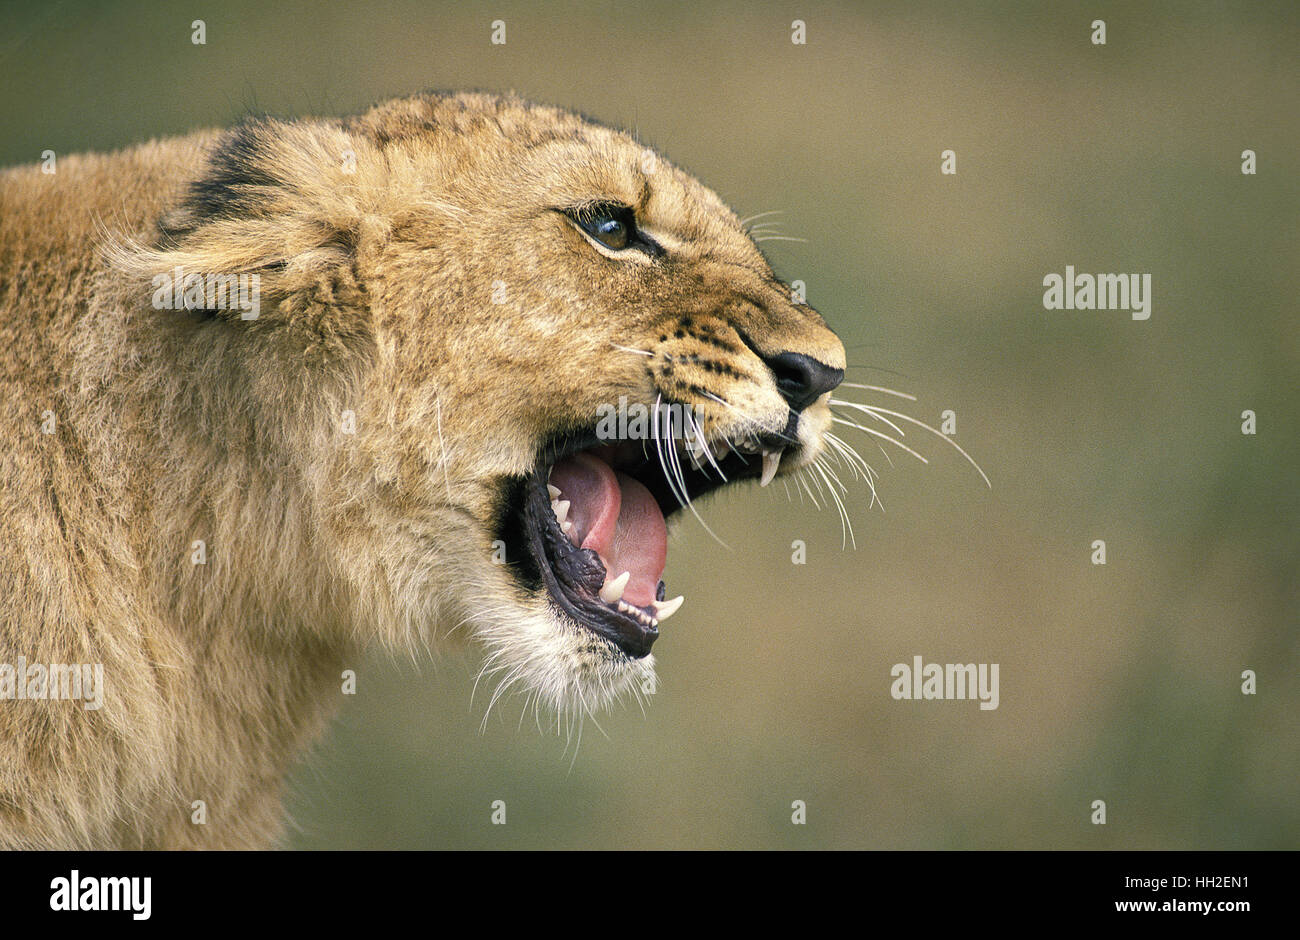 African Lion, panthera leo, Cub Snarling - Stock Image